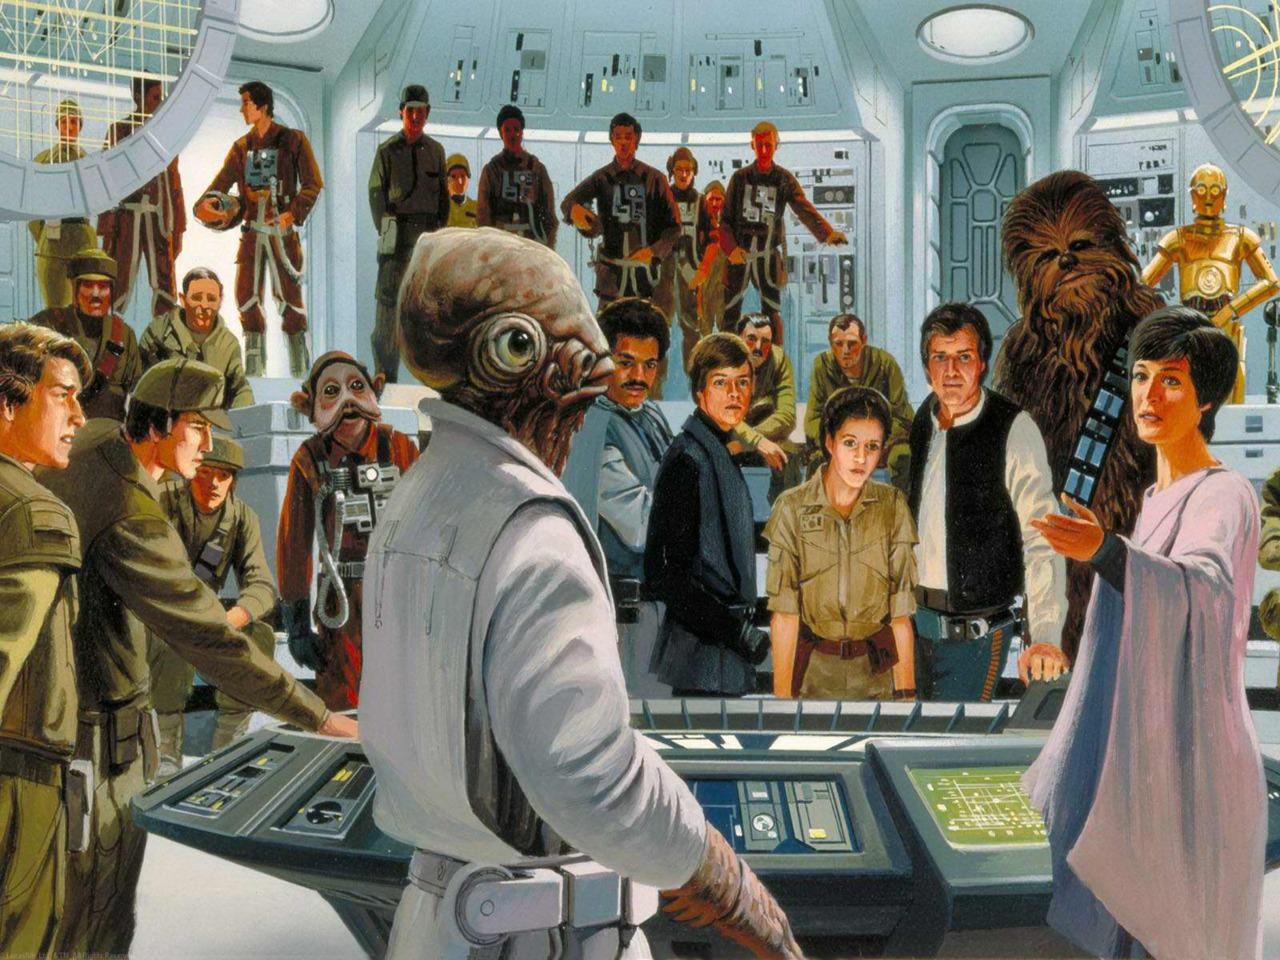 The Star Wars Culture: Star Wars Concept Art Ralph McQuarrie